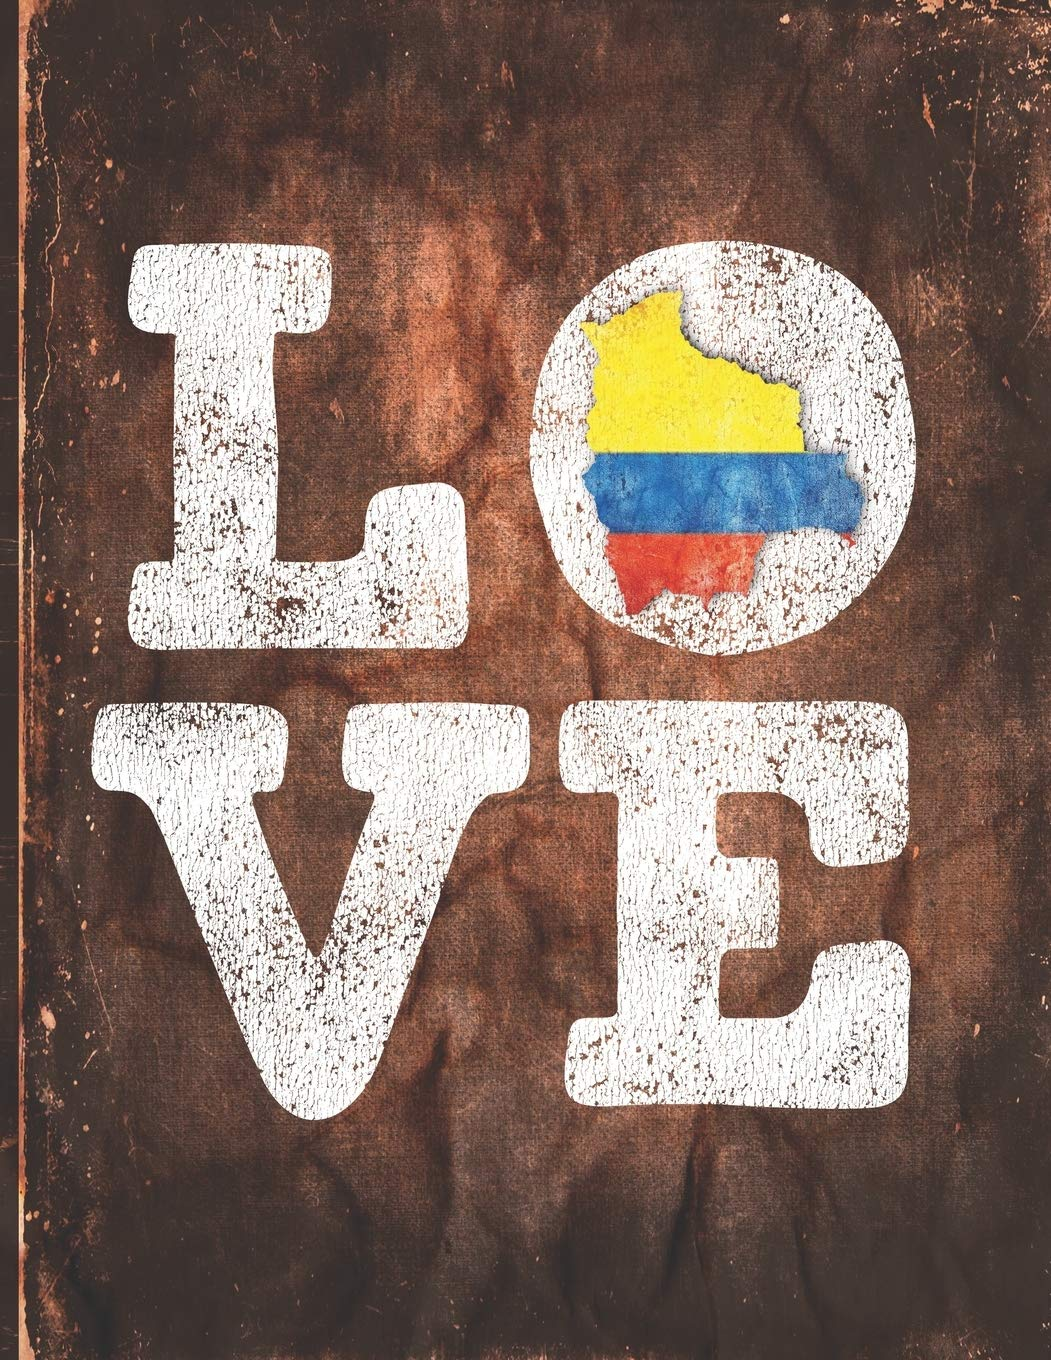 Love: Colombia Flag Cute Personalized Gift for Colombian Friend 2020 Calendar Daily Weekly Monthly Planner Organizer